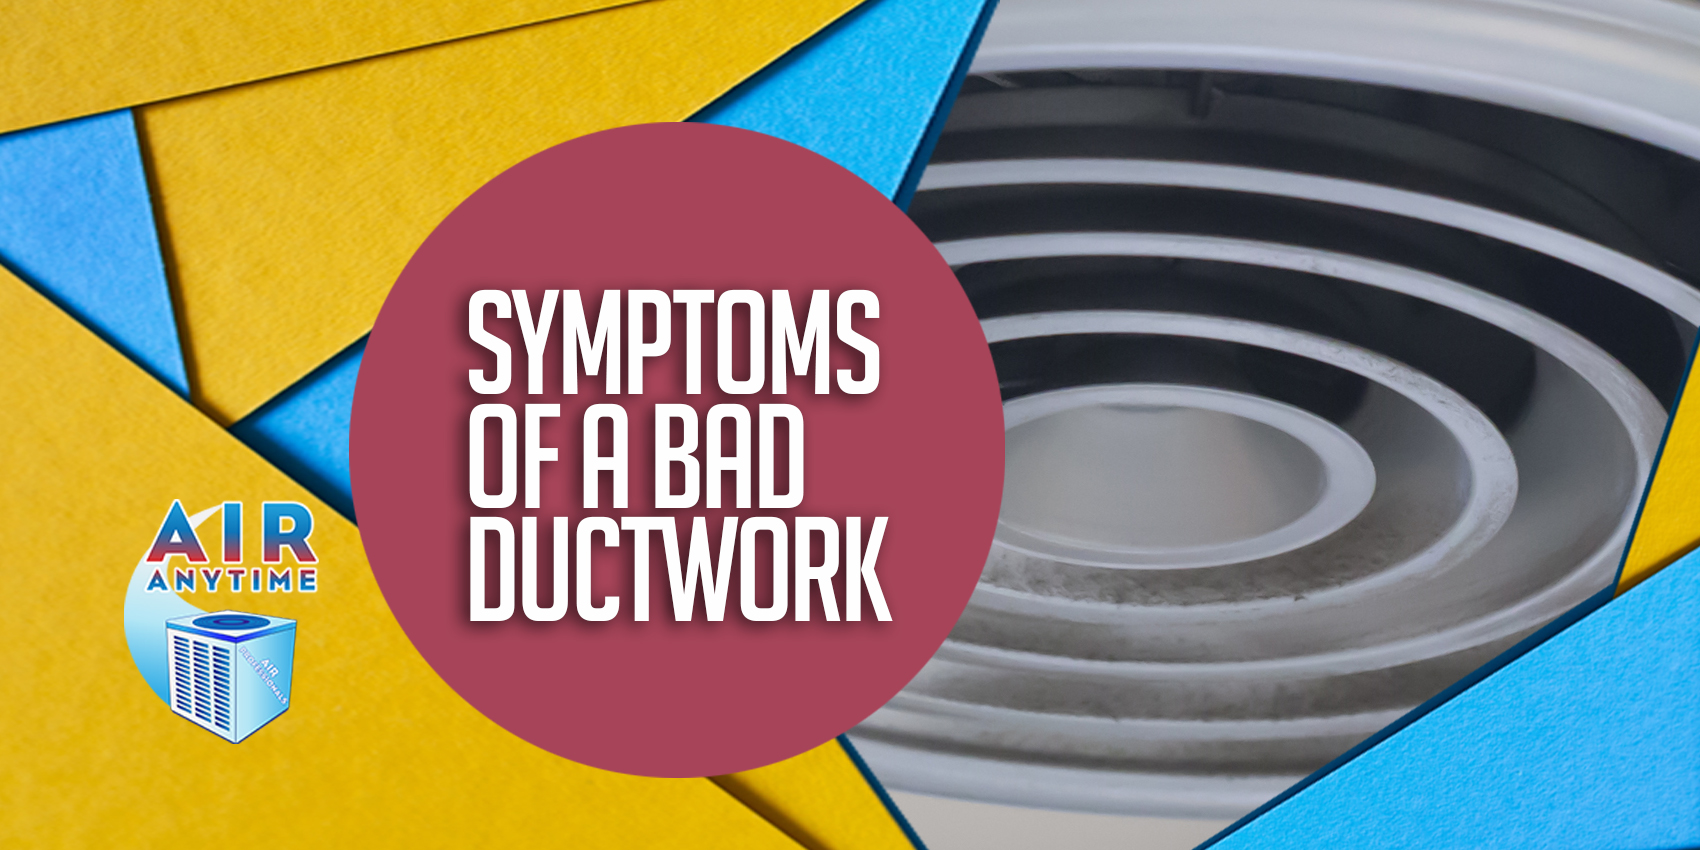 Symptoms Of A Bad Ductwork